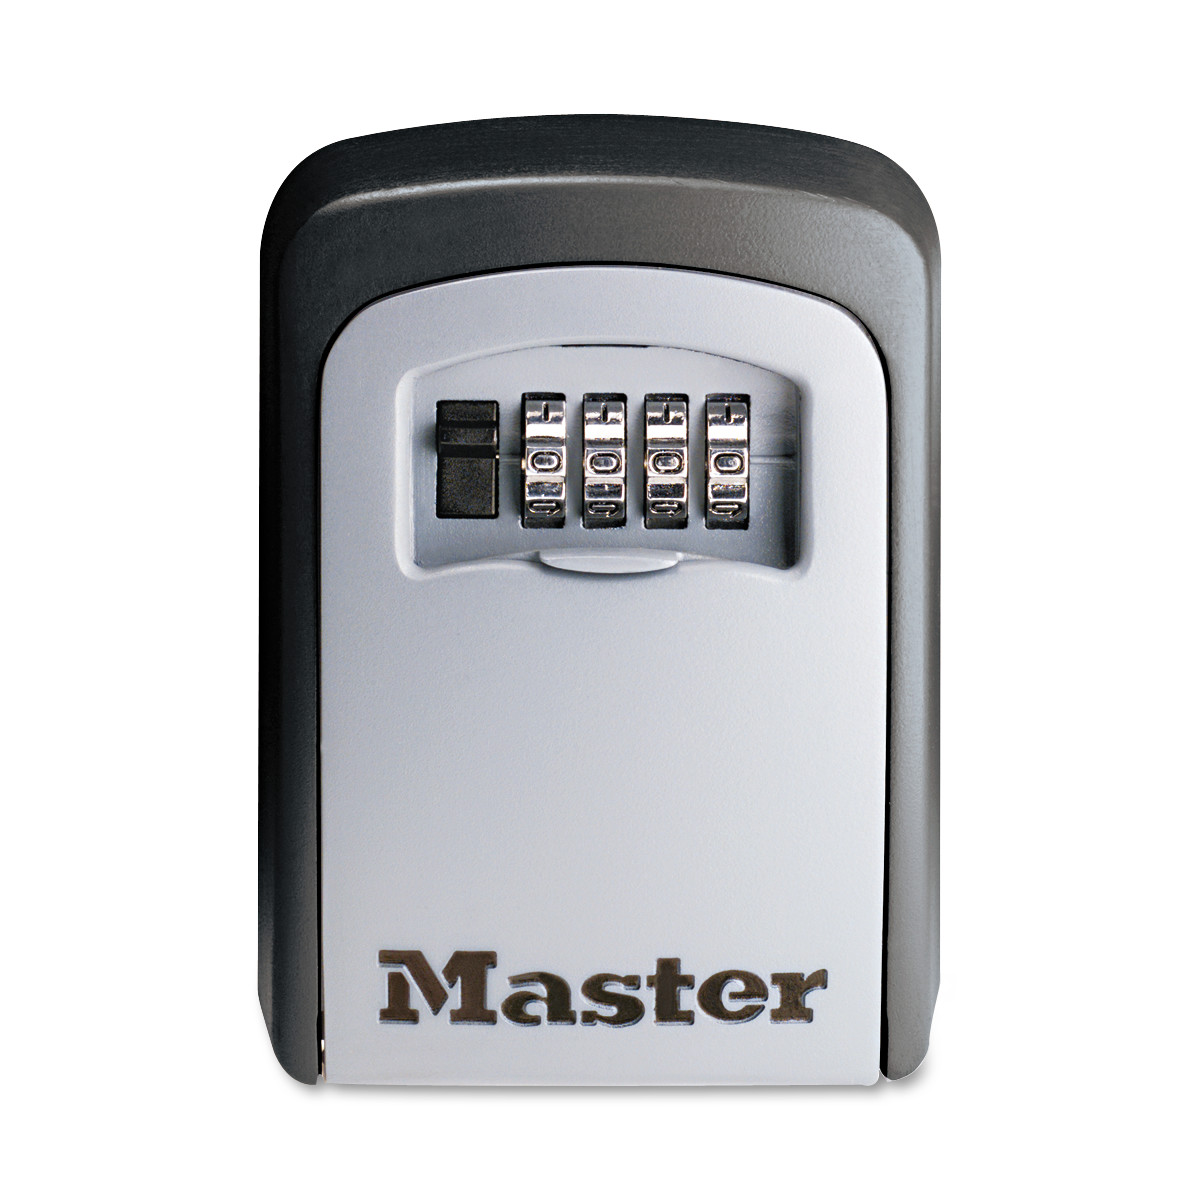 Master Lock Locking Combination 5 Key Steel Box, 3 1 4w x 1 1 2d x 4 5 8h, Black Silver by MASTER LOCK COMPANY